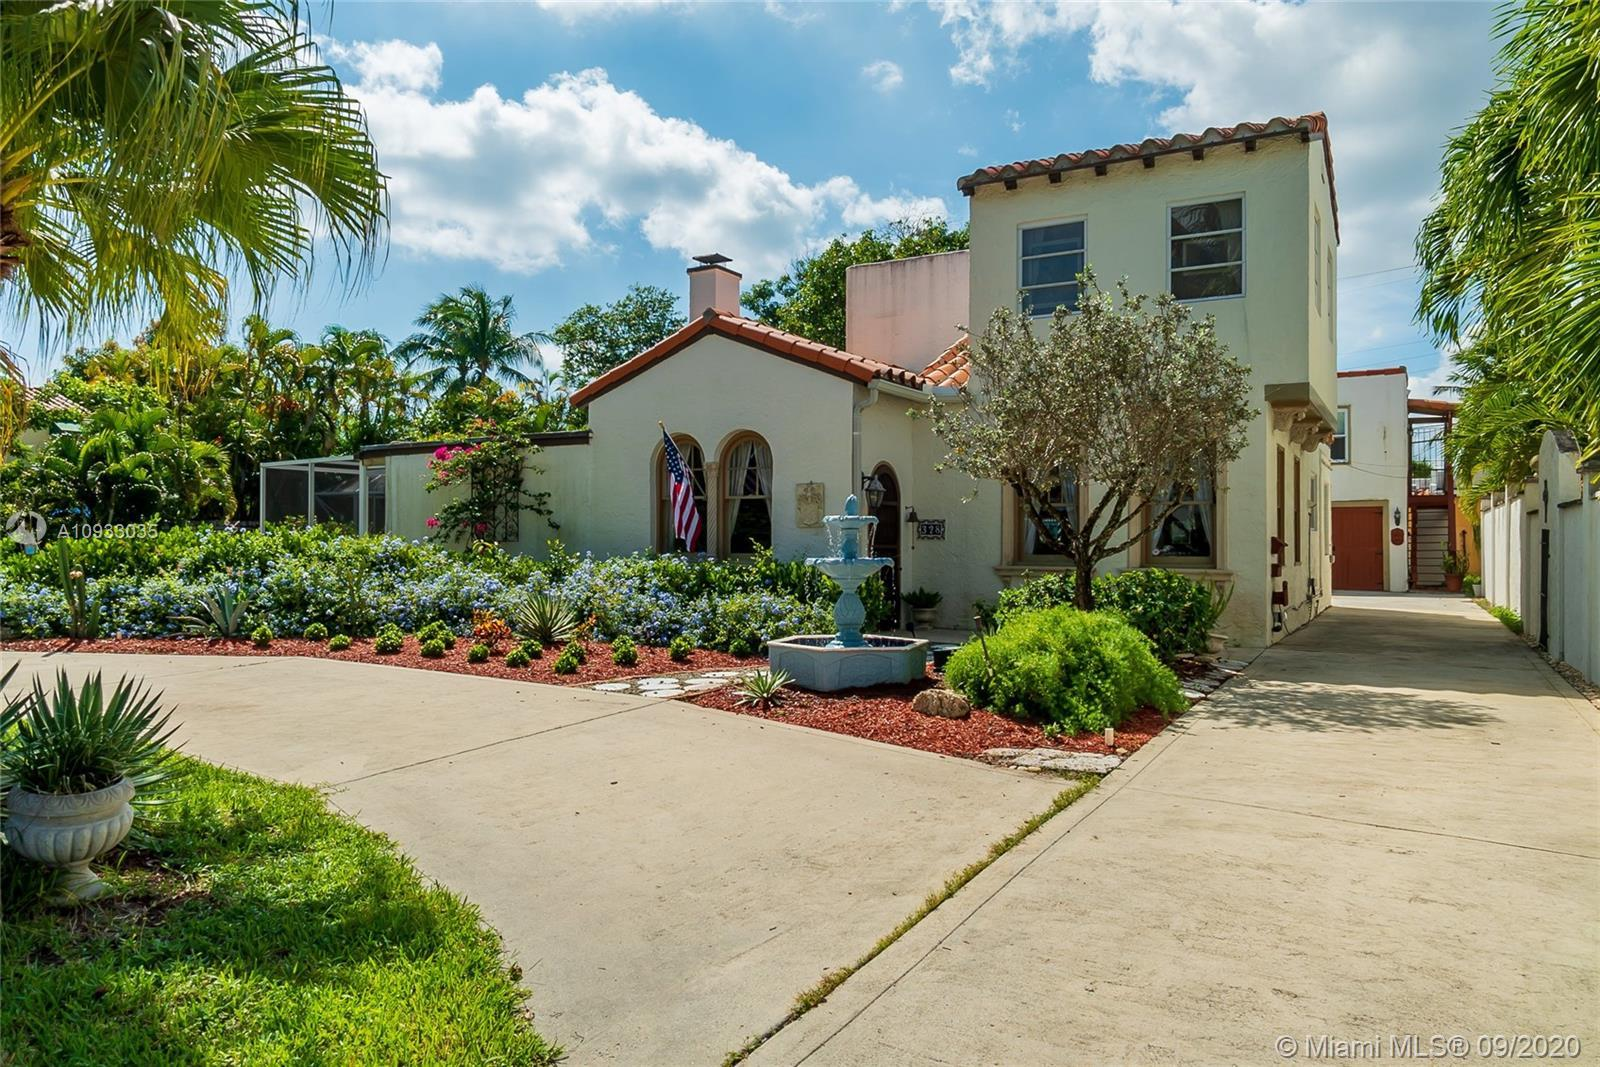 Historic Estate and Carriage Home, this 1925 Meisner Design Spanish Mission Estate home in SOSO. Ent